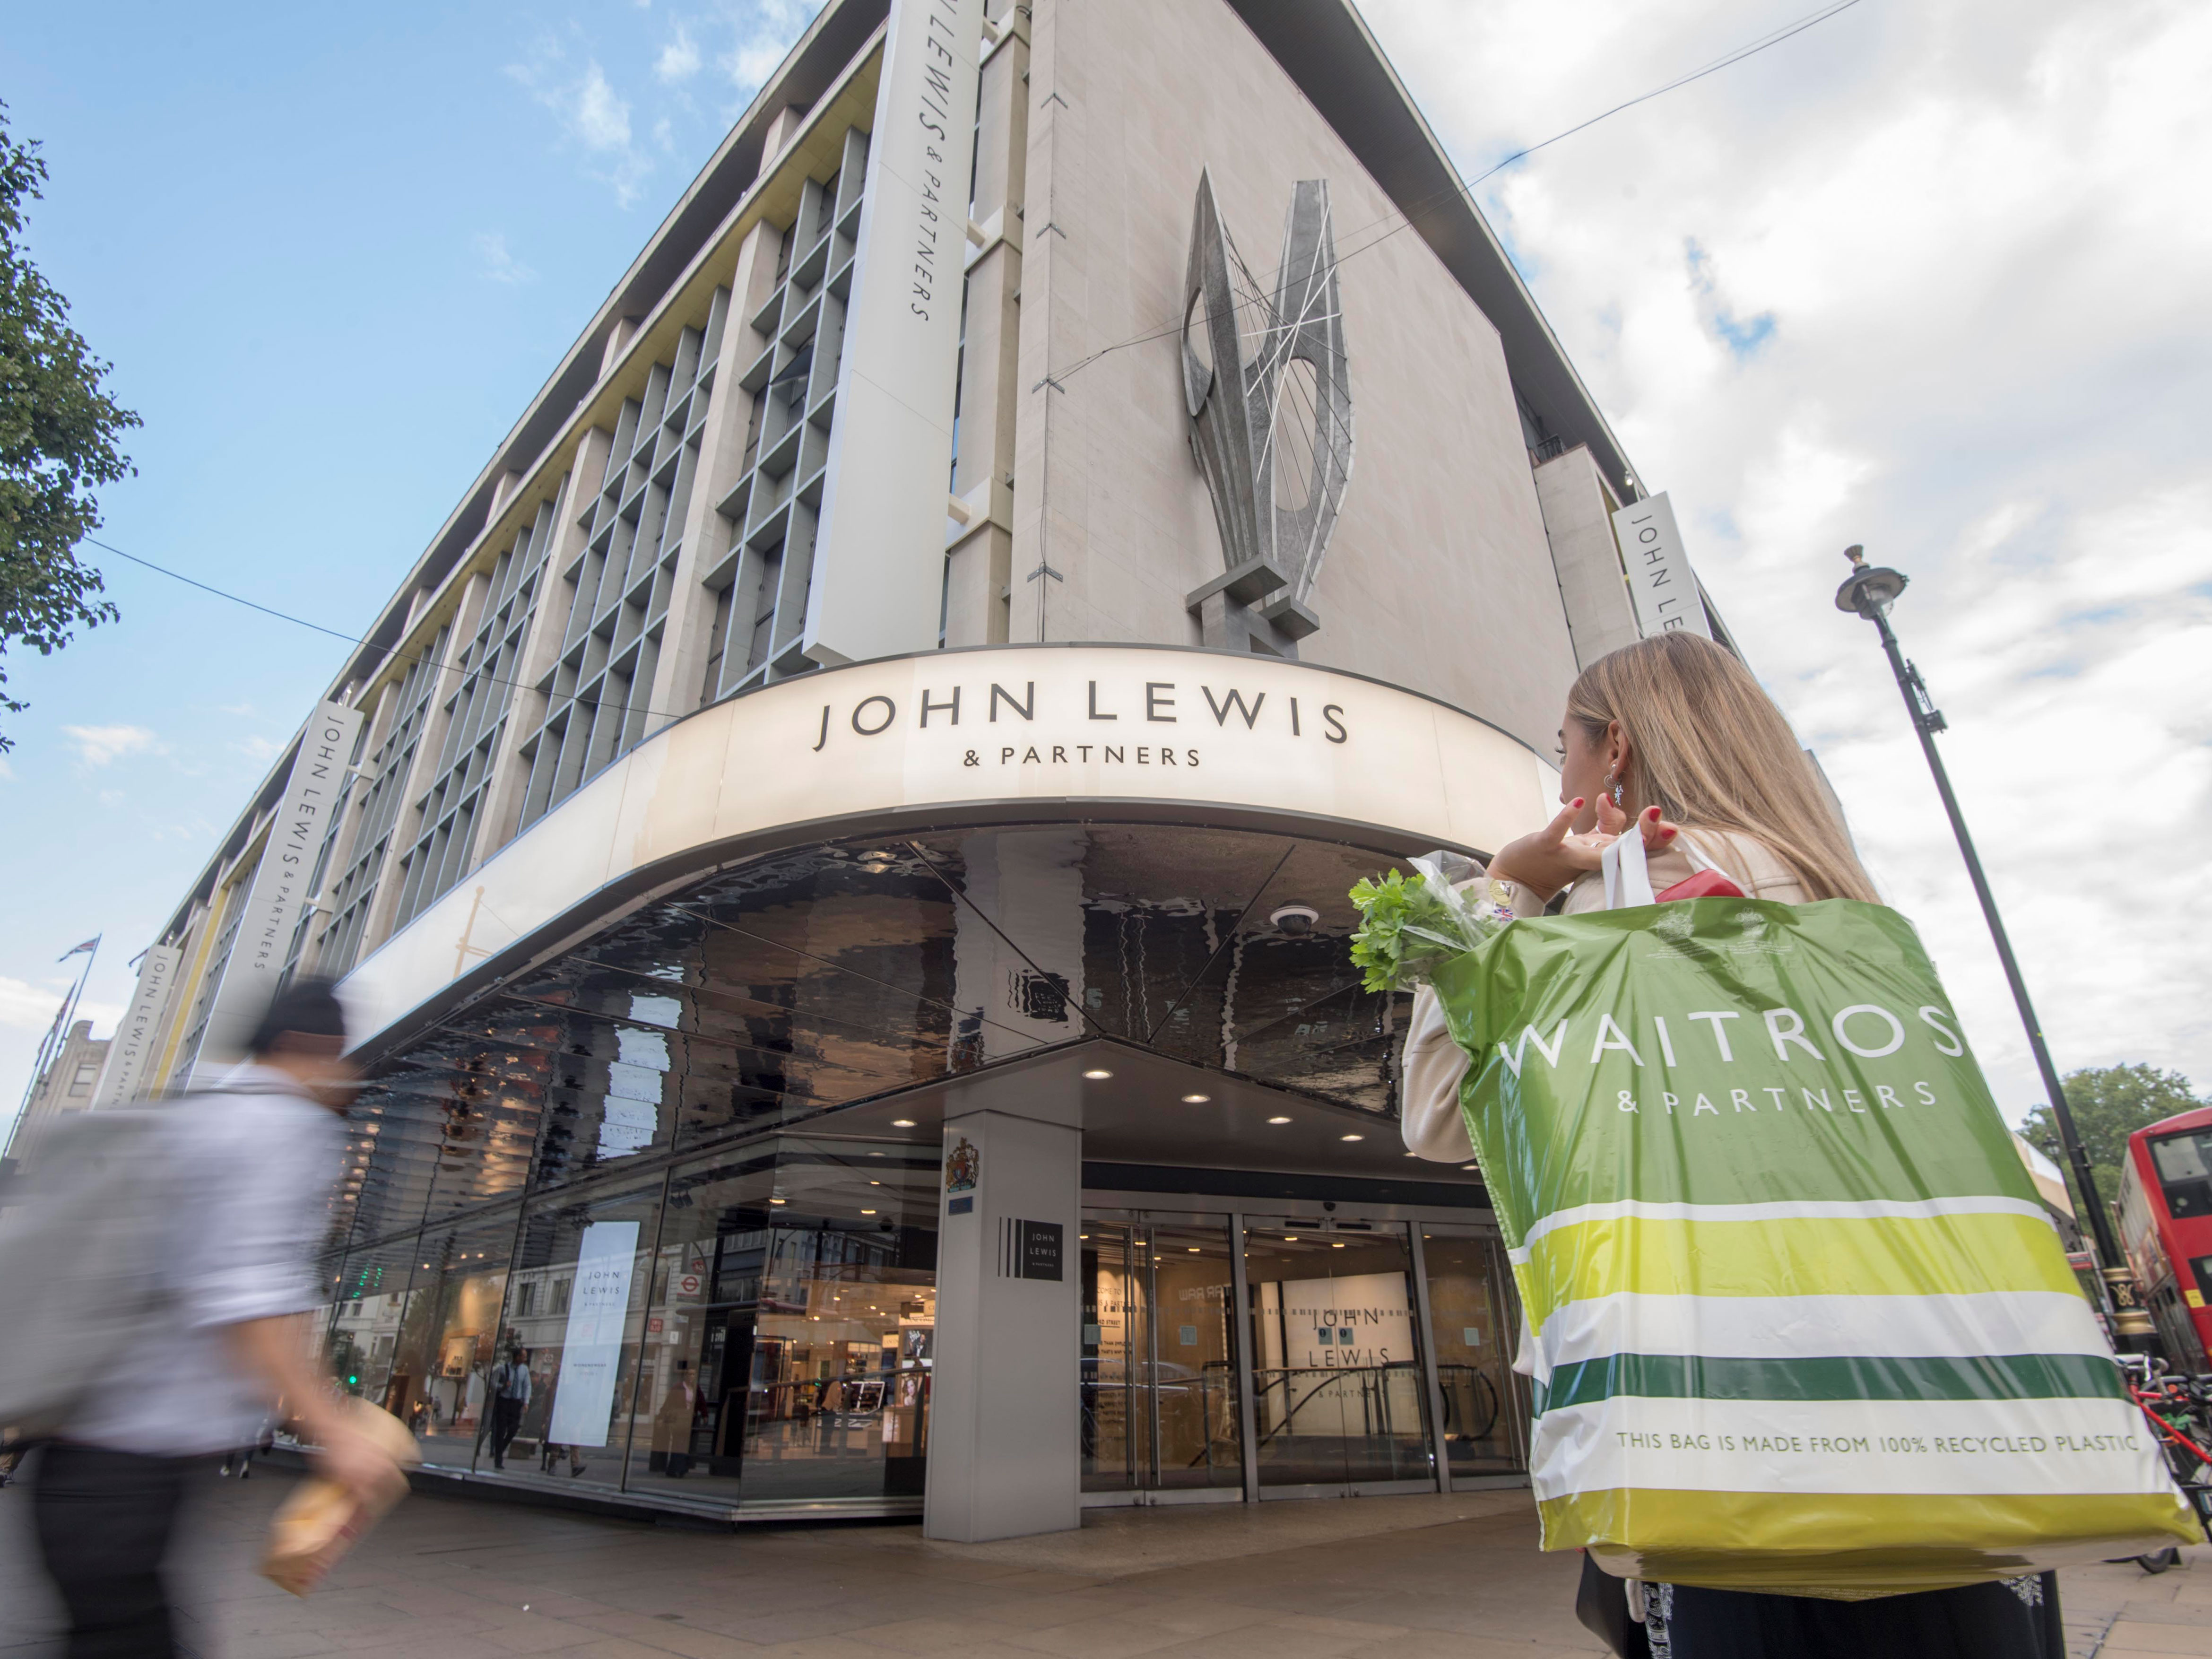 Above: John Lewis experienced a 9% increase in its Valentine's Day card sales year on year.